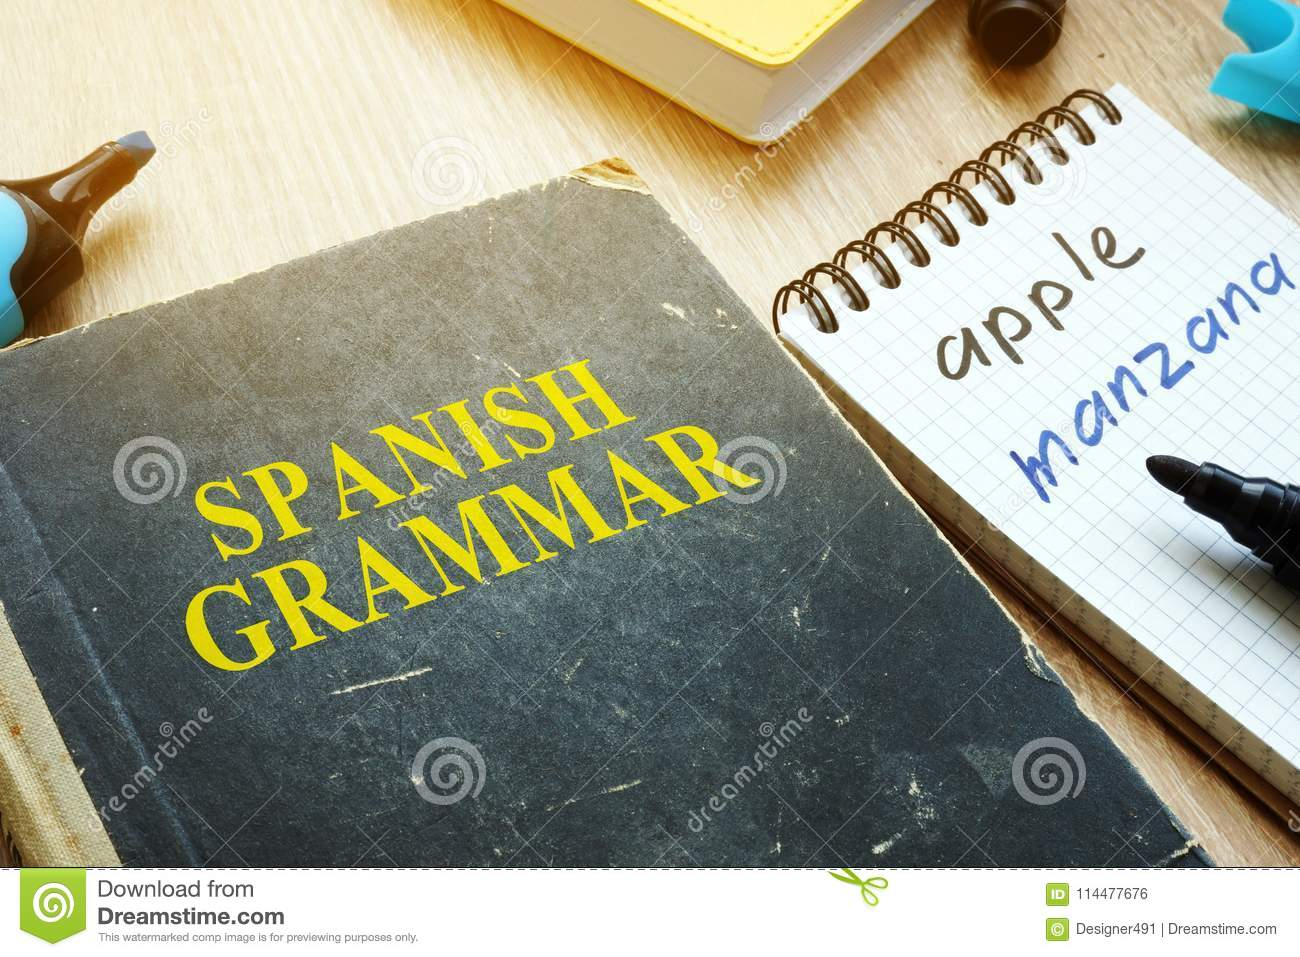 Learn Spanish Grammar  Book And Notebook On A Desk  Stock Photo